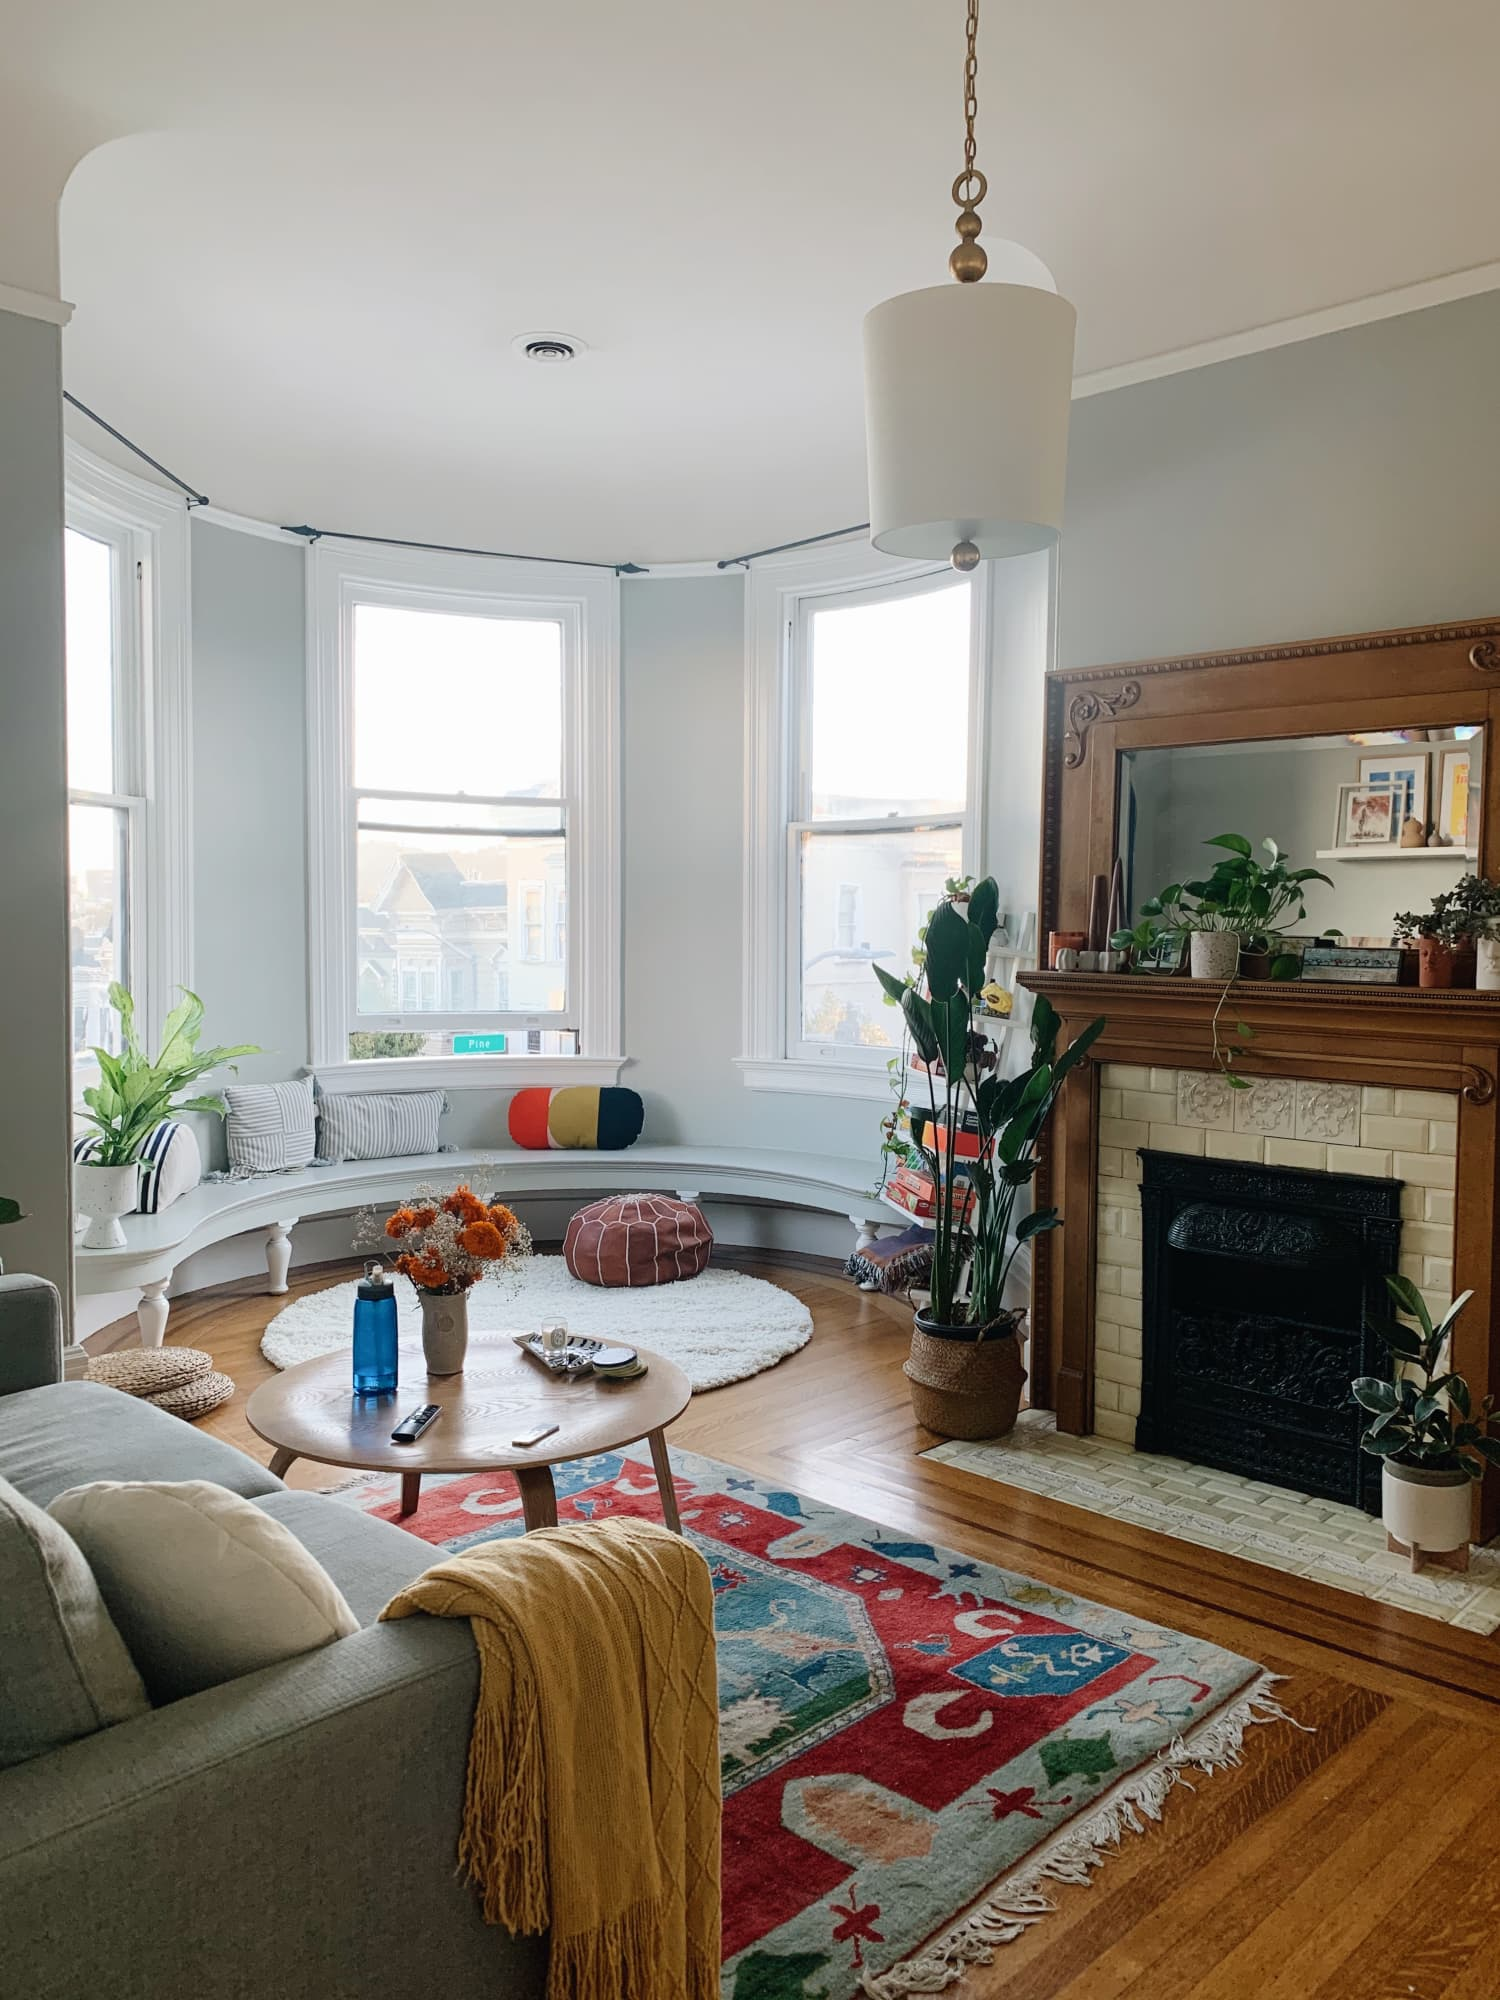 Get the Look: A Cheerful, Sun-Filled SF Home